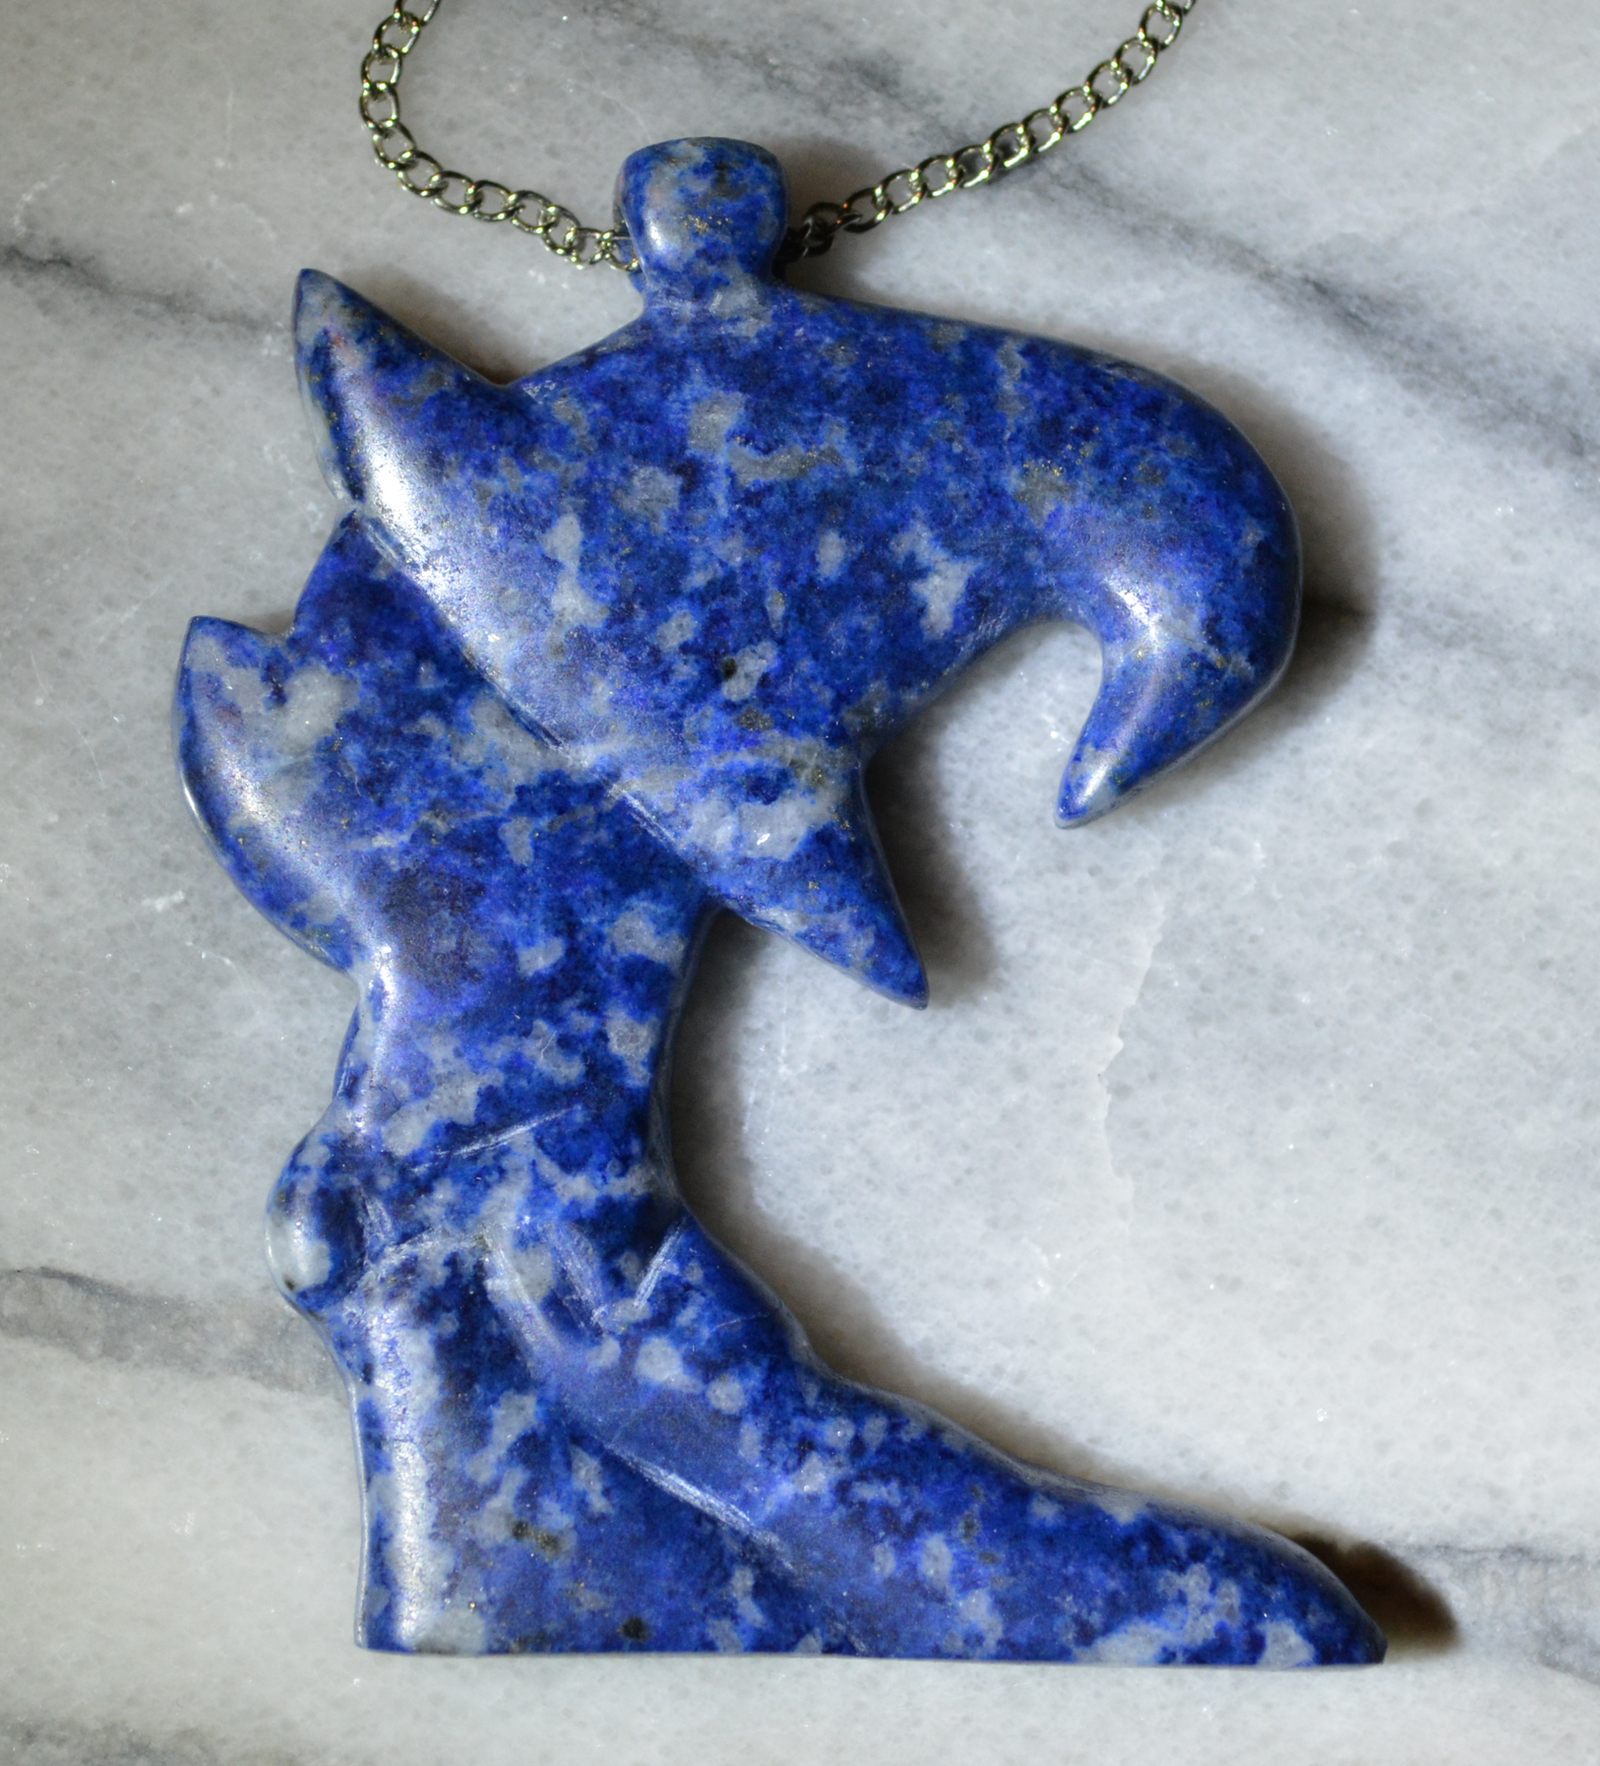 trixie_pendant_in_lapis_lazuli_by_archiveit1-d91ha7v.png